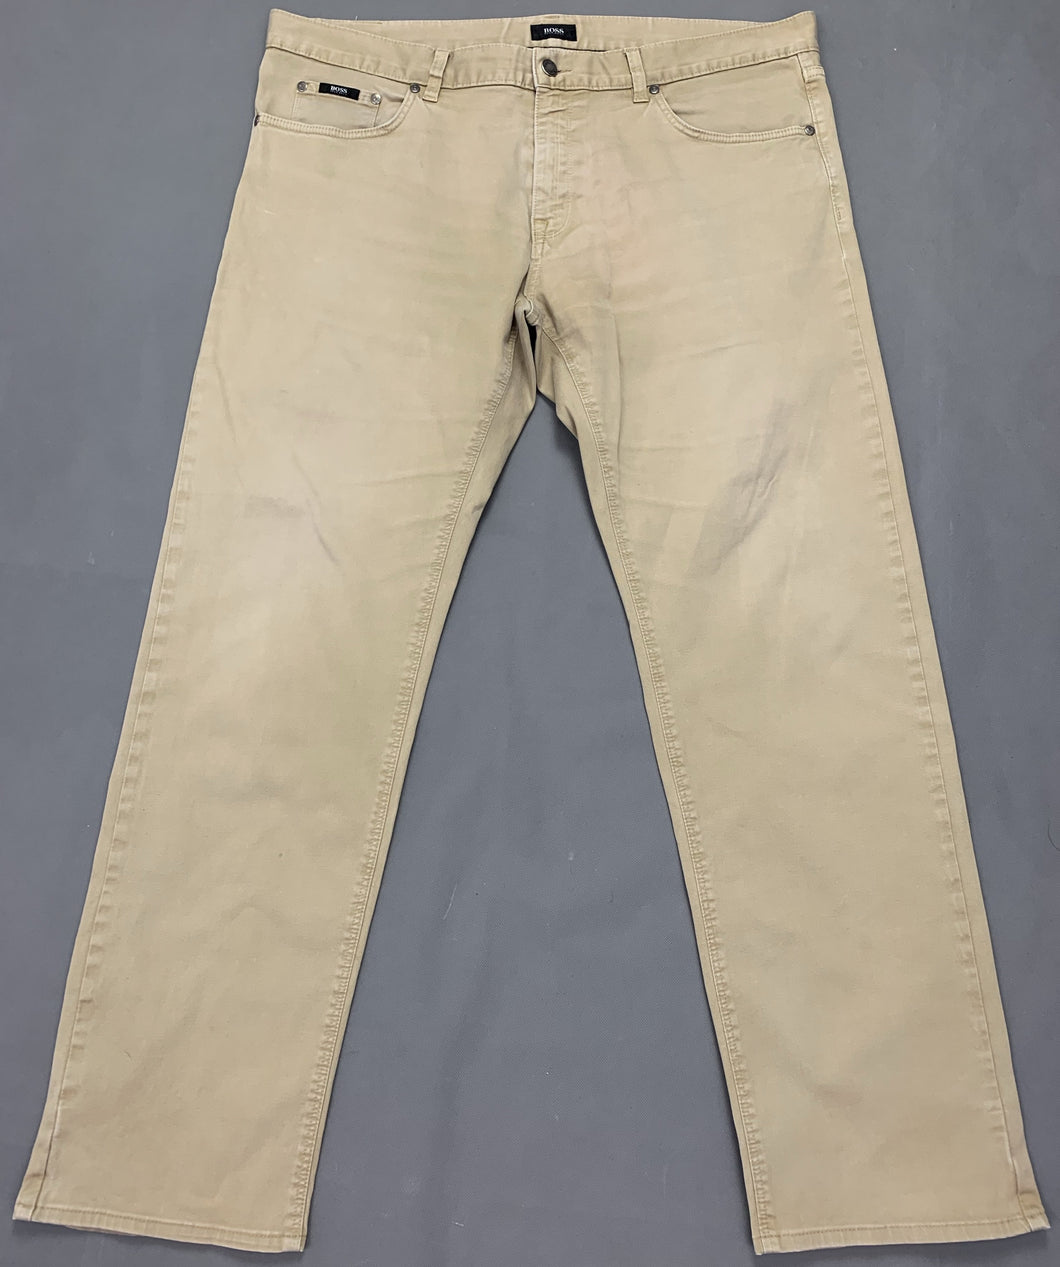 HUGO BOSS Mens MAINE Beige Denim Regular Fit JEANS Size Waist 38